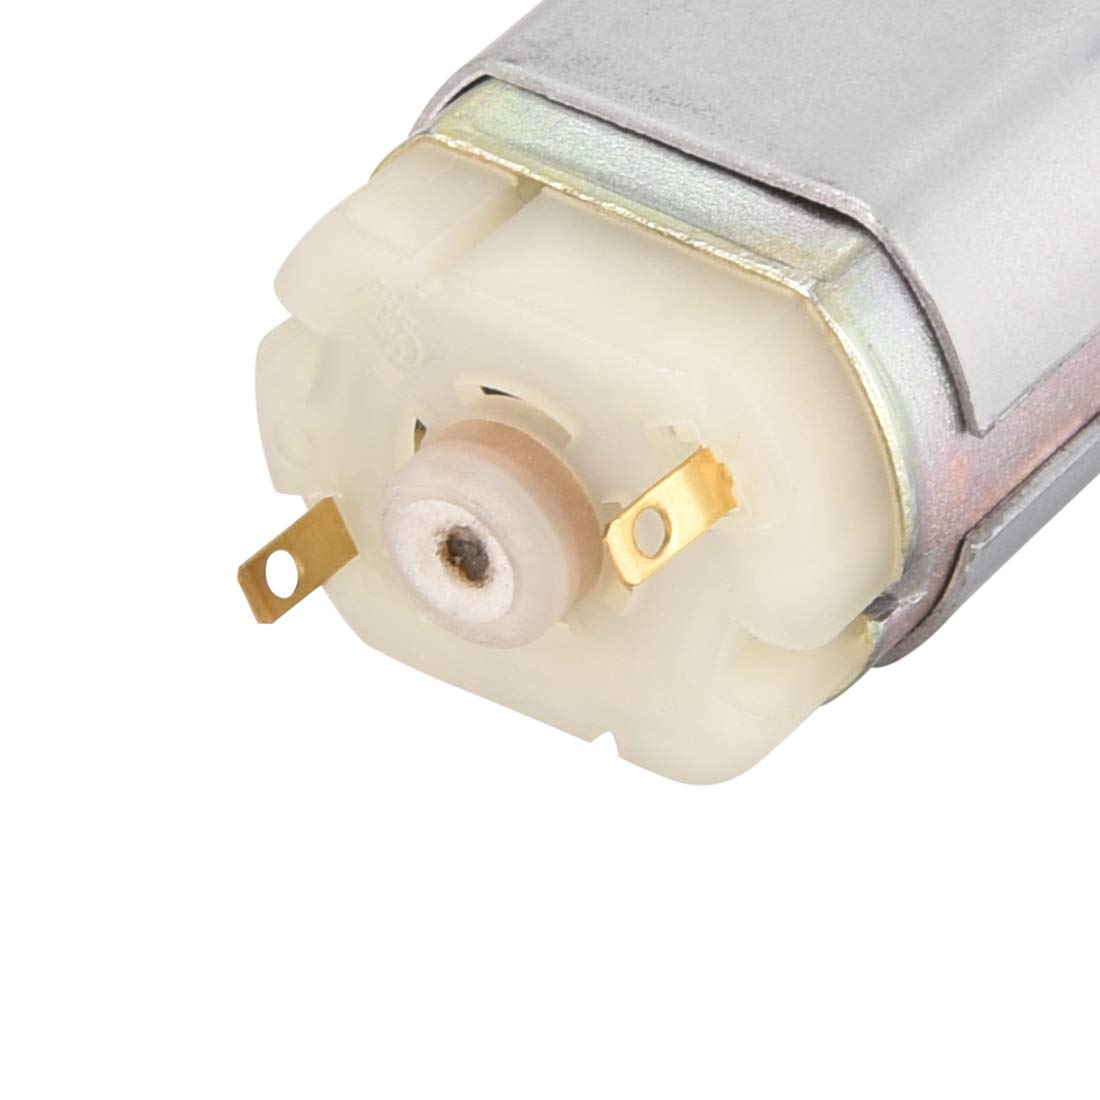 uxcell DC Motor 7.2V 20000RPM 1.9A Electric Motor D Shaft for RC Boat Toys Model DIY Hobby